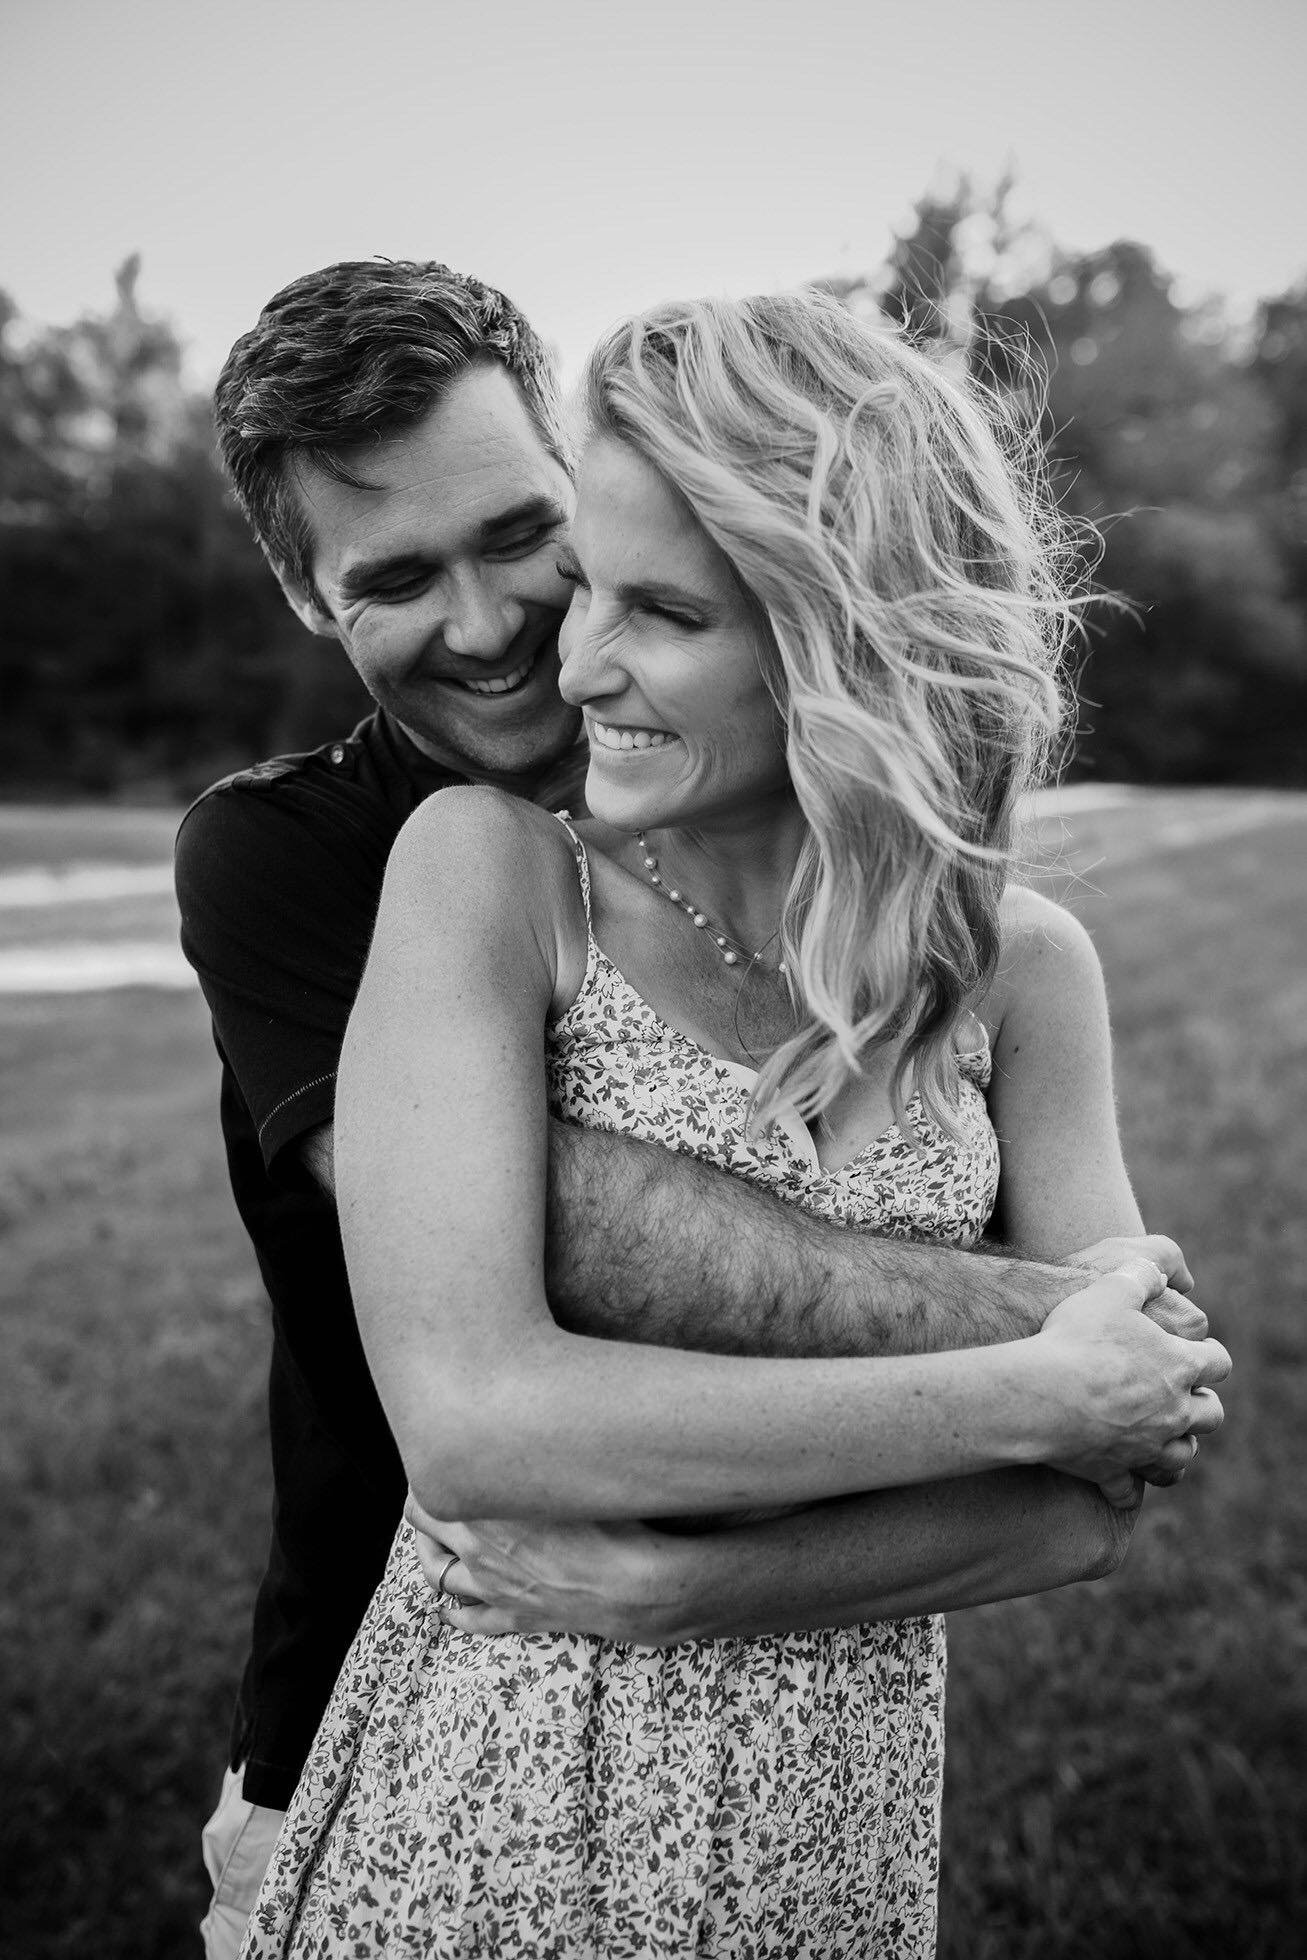 Megan-Marie-Photographer-Vermont-Photographer-New-York-Photographer-Engagement-Wedding-Family-Photographer